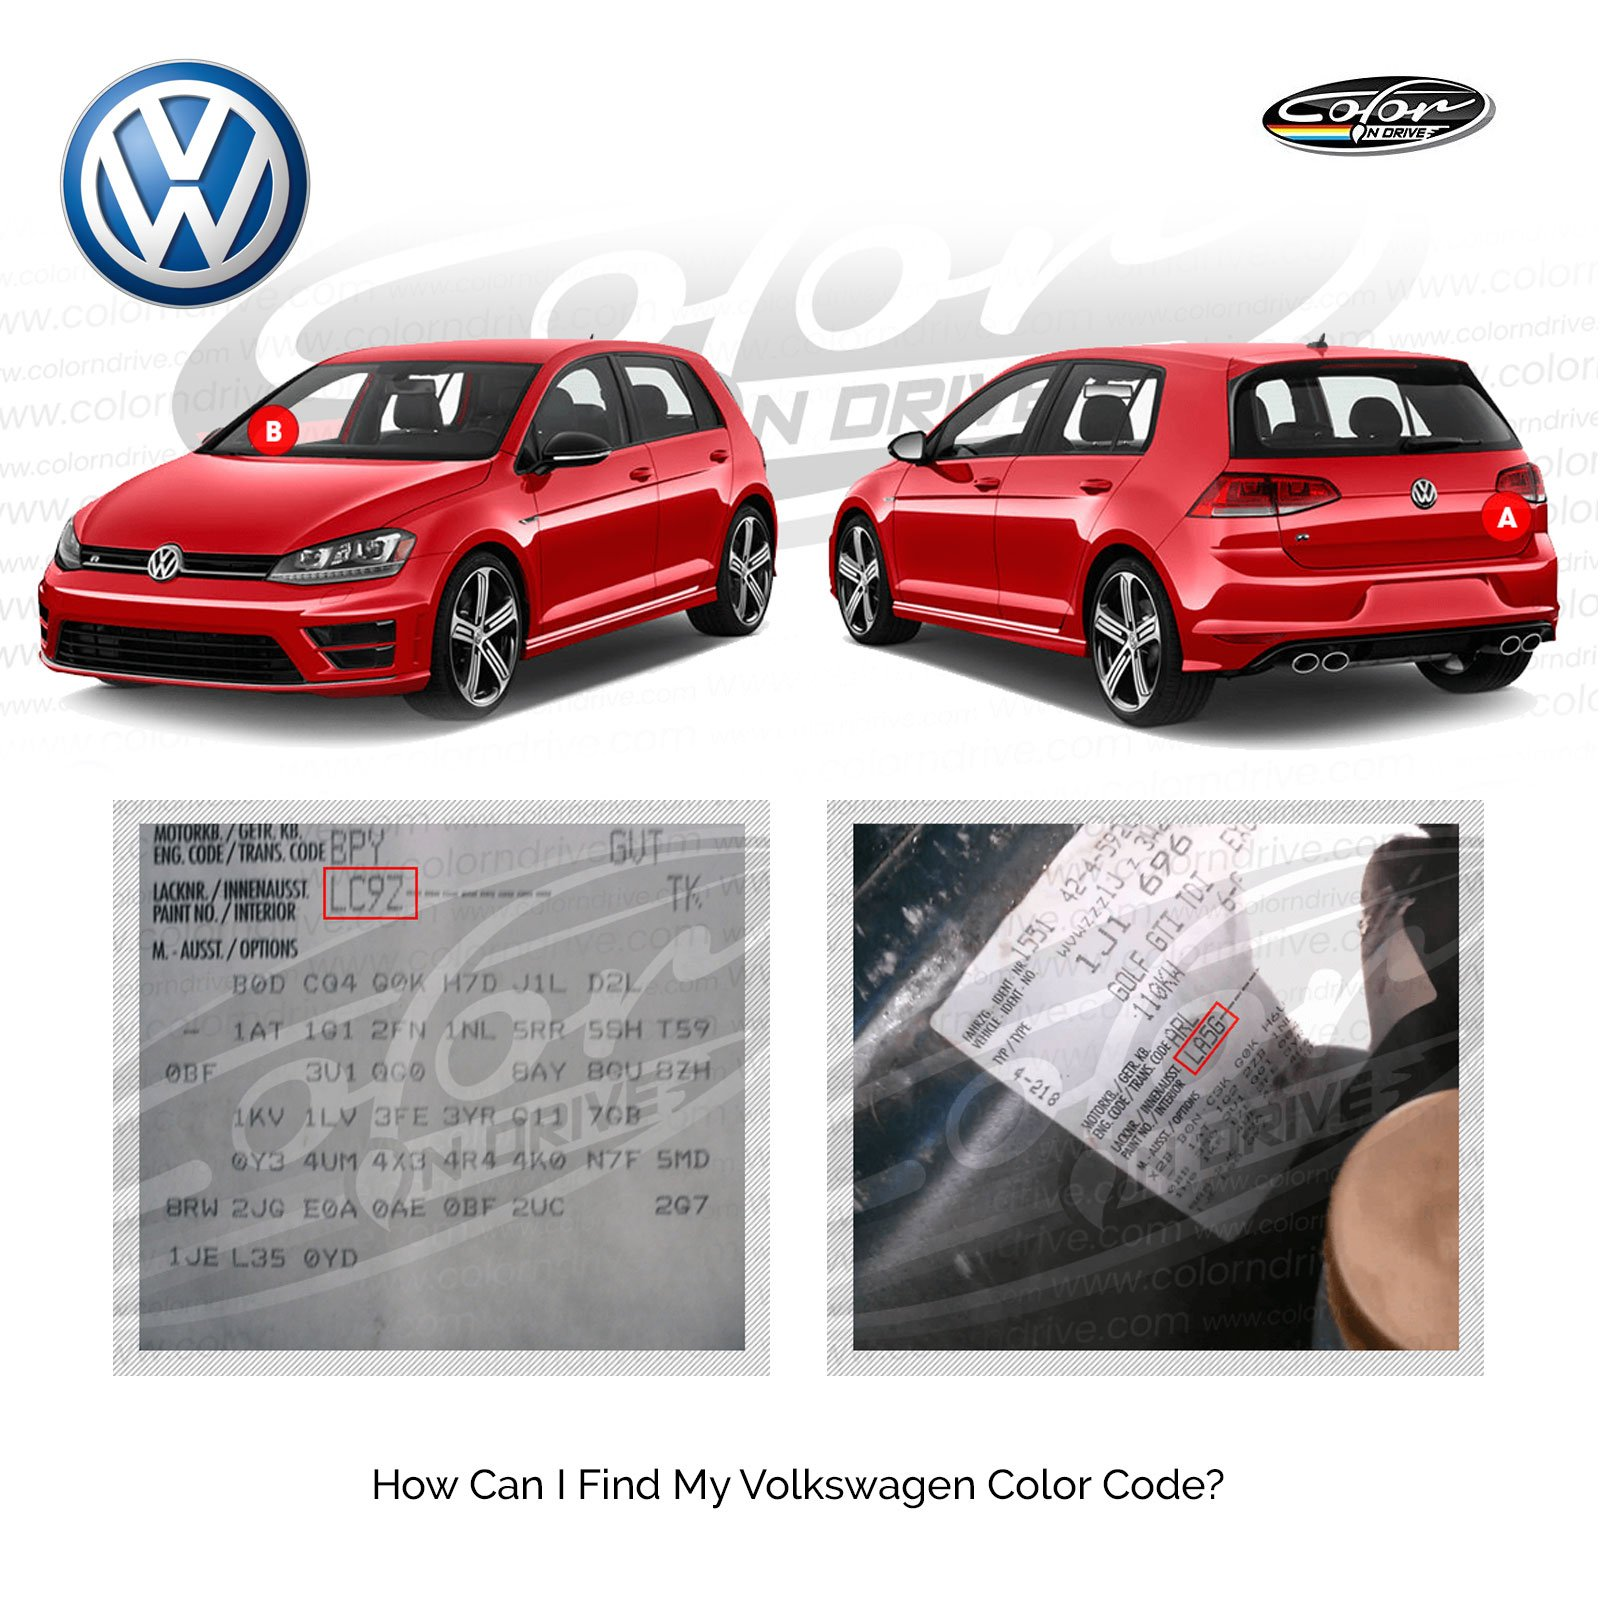 Volkswagen Polar White - L90A Touch Up Paint for Golf, Passat, GTI, Polo, Jetta, TIGUAN, Beetle and All Models Paint Scrath and Chips Repair Kit - OEM Quality, Exact Color Match - Pro Pack by Color N Drive (Image #2)